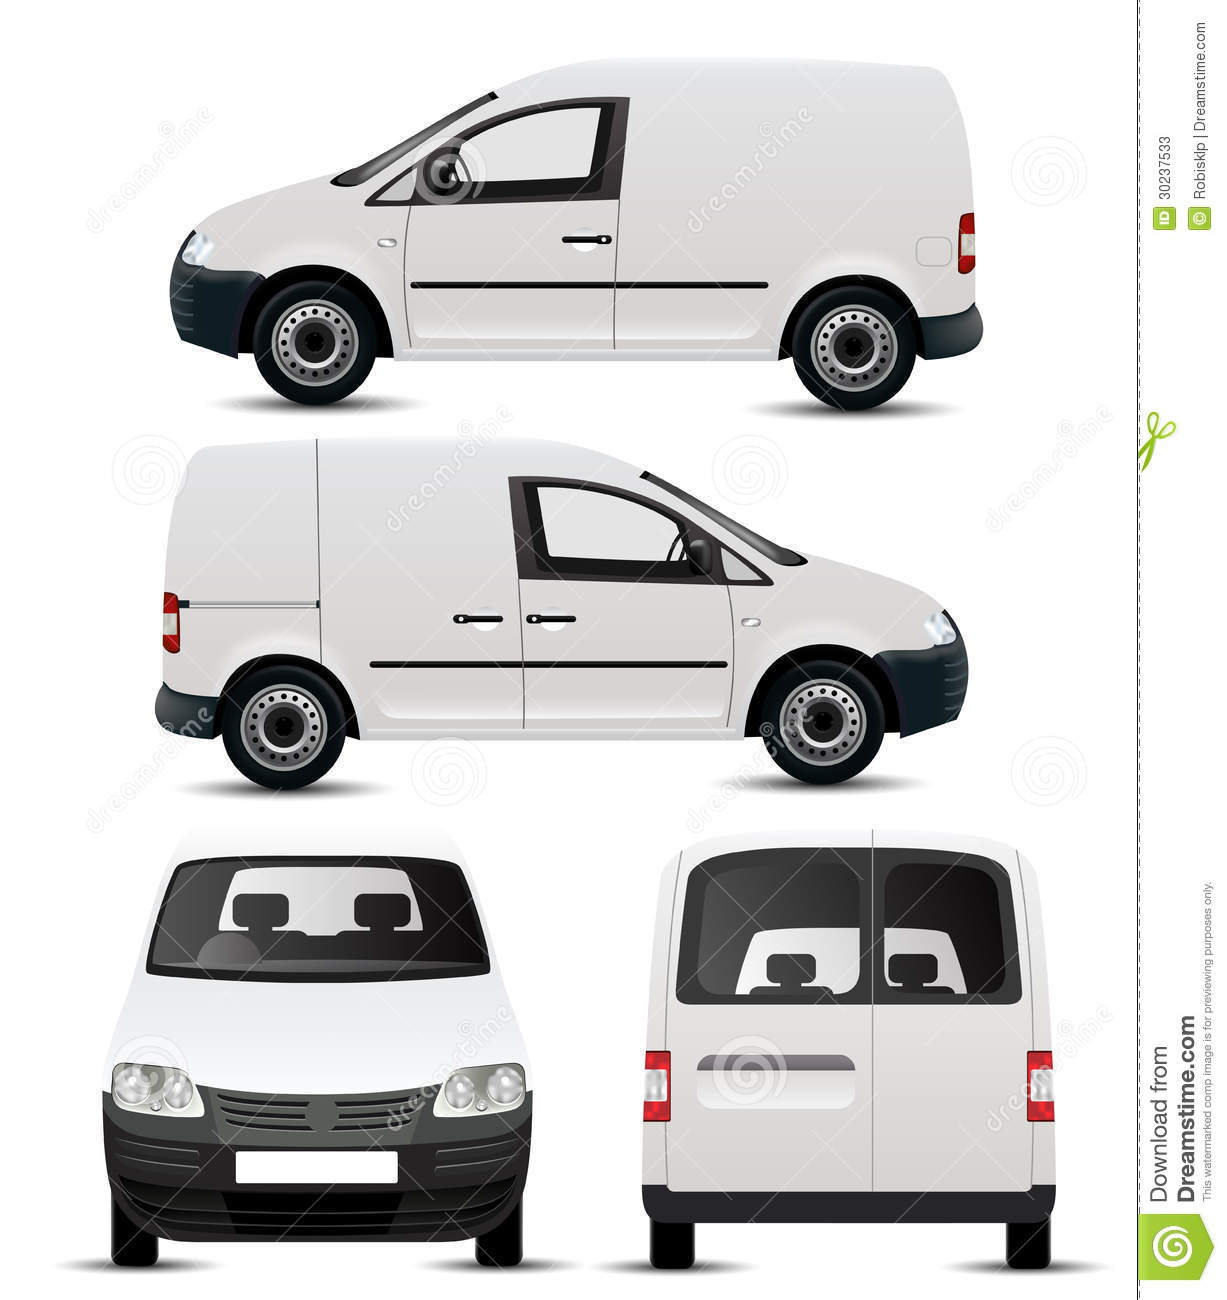 White Commercial Vehicle Mockup Stock Photos Image 30237533